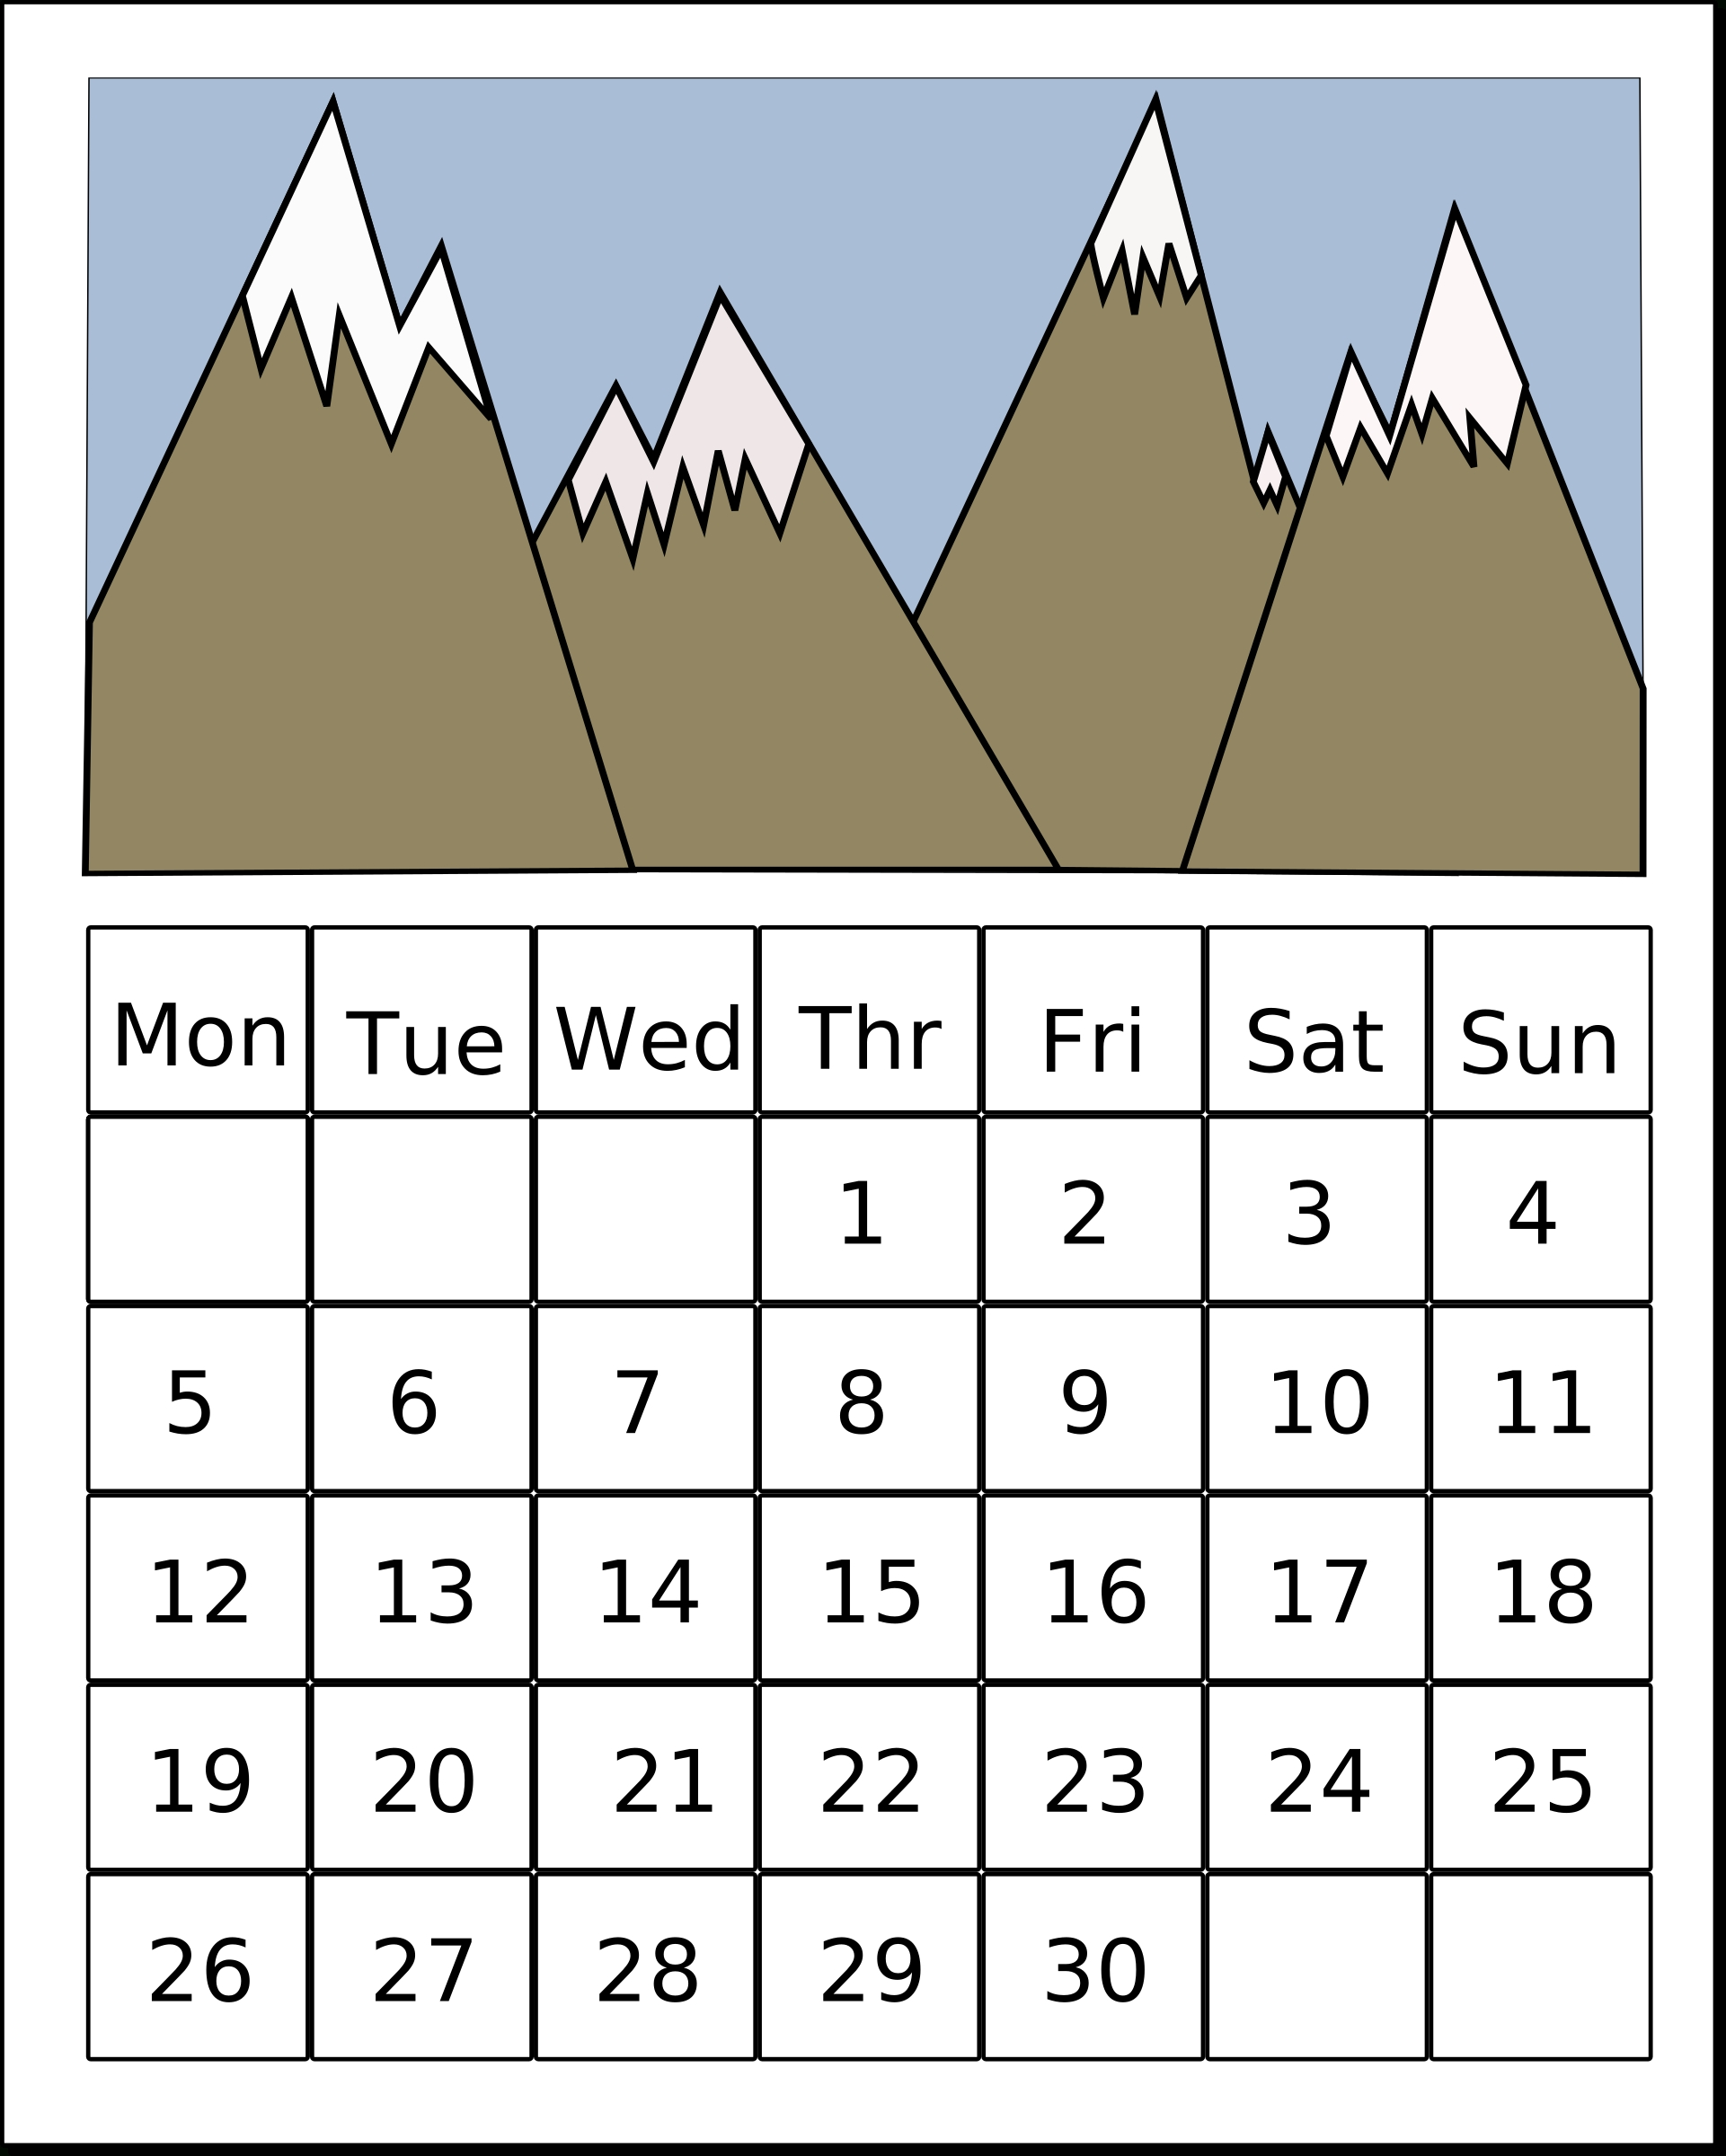 Calendar Of Seasonal Events And Holidays - Stem Throughout